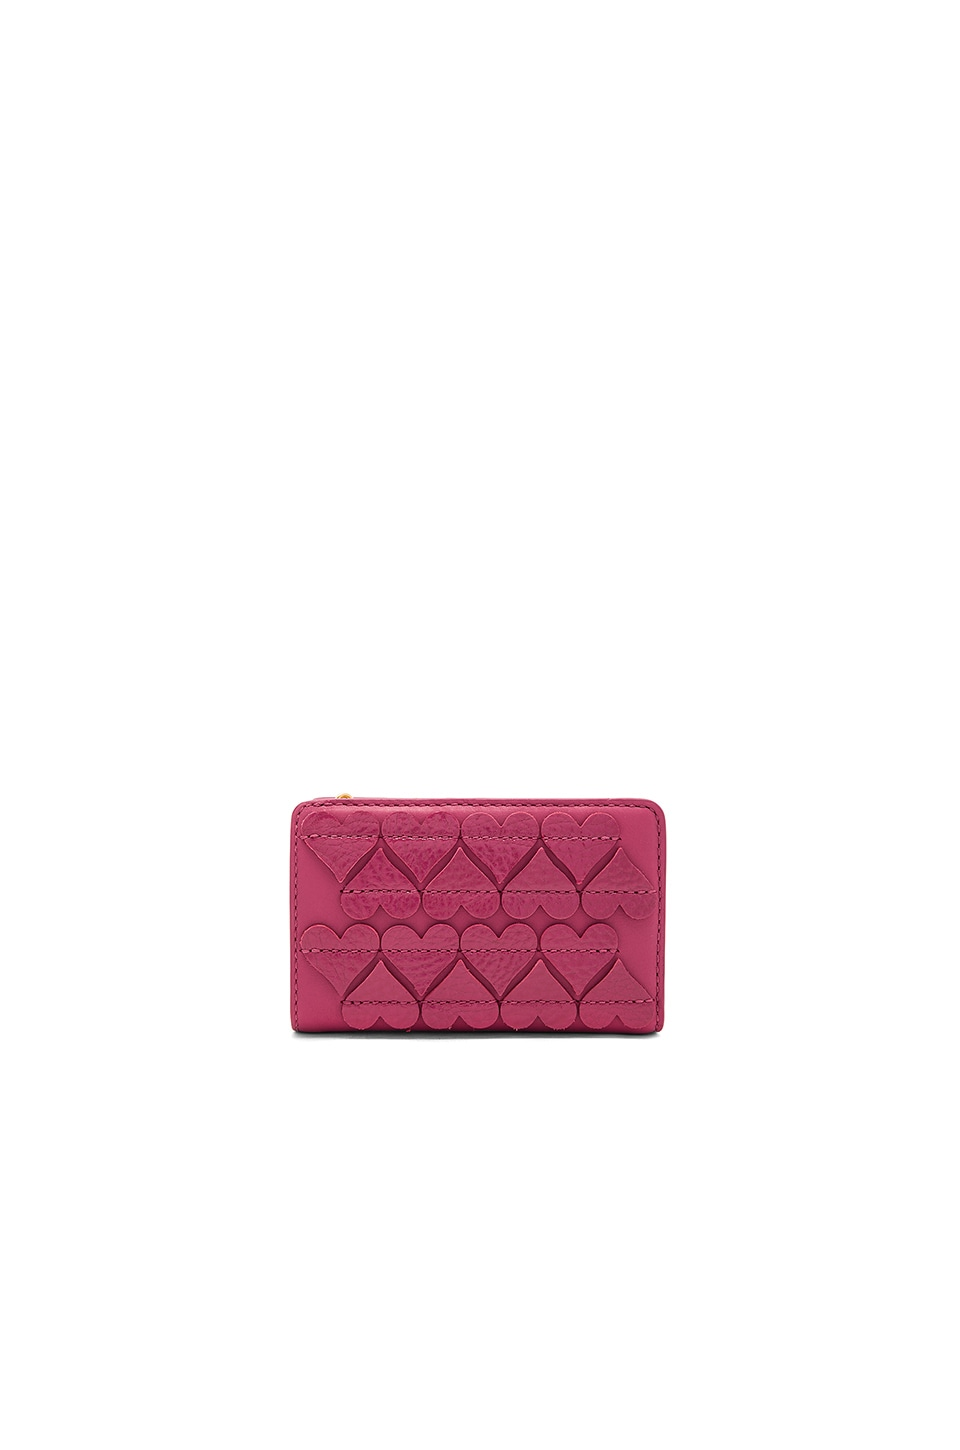 Stitched Hearts Compact Wallet